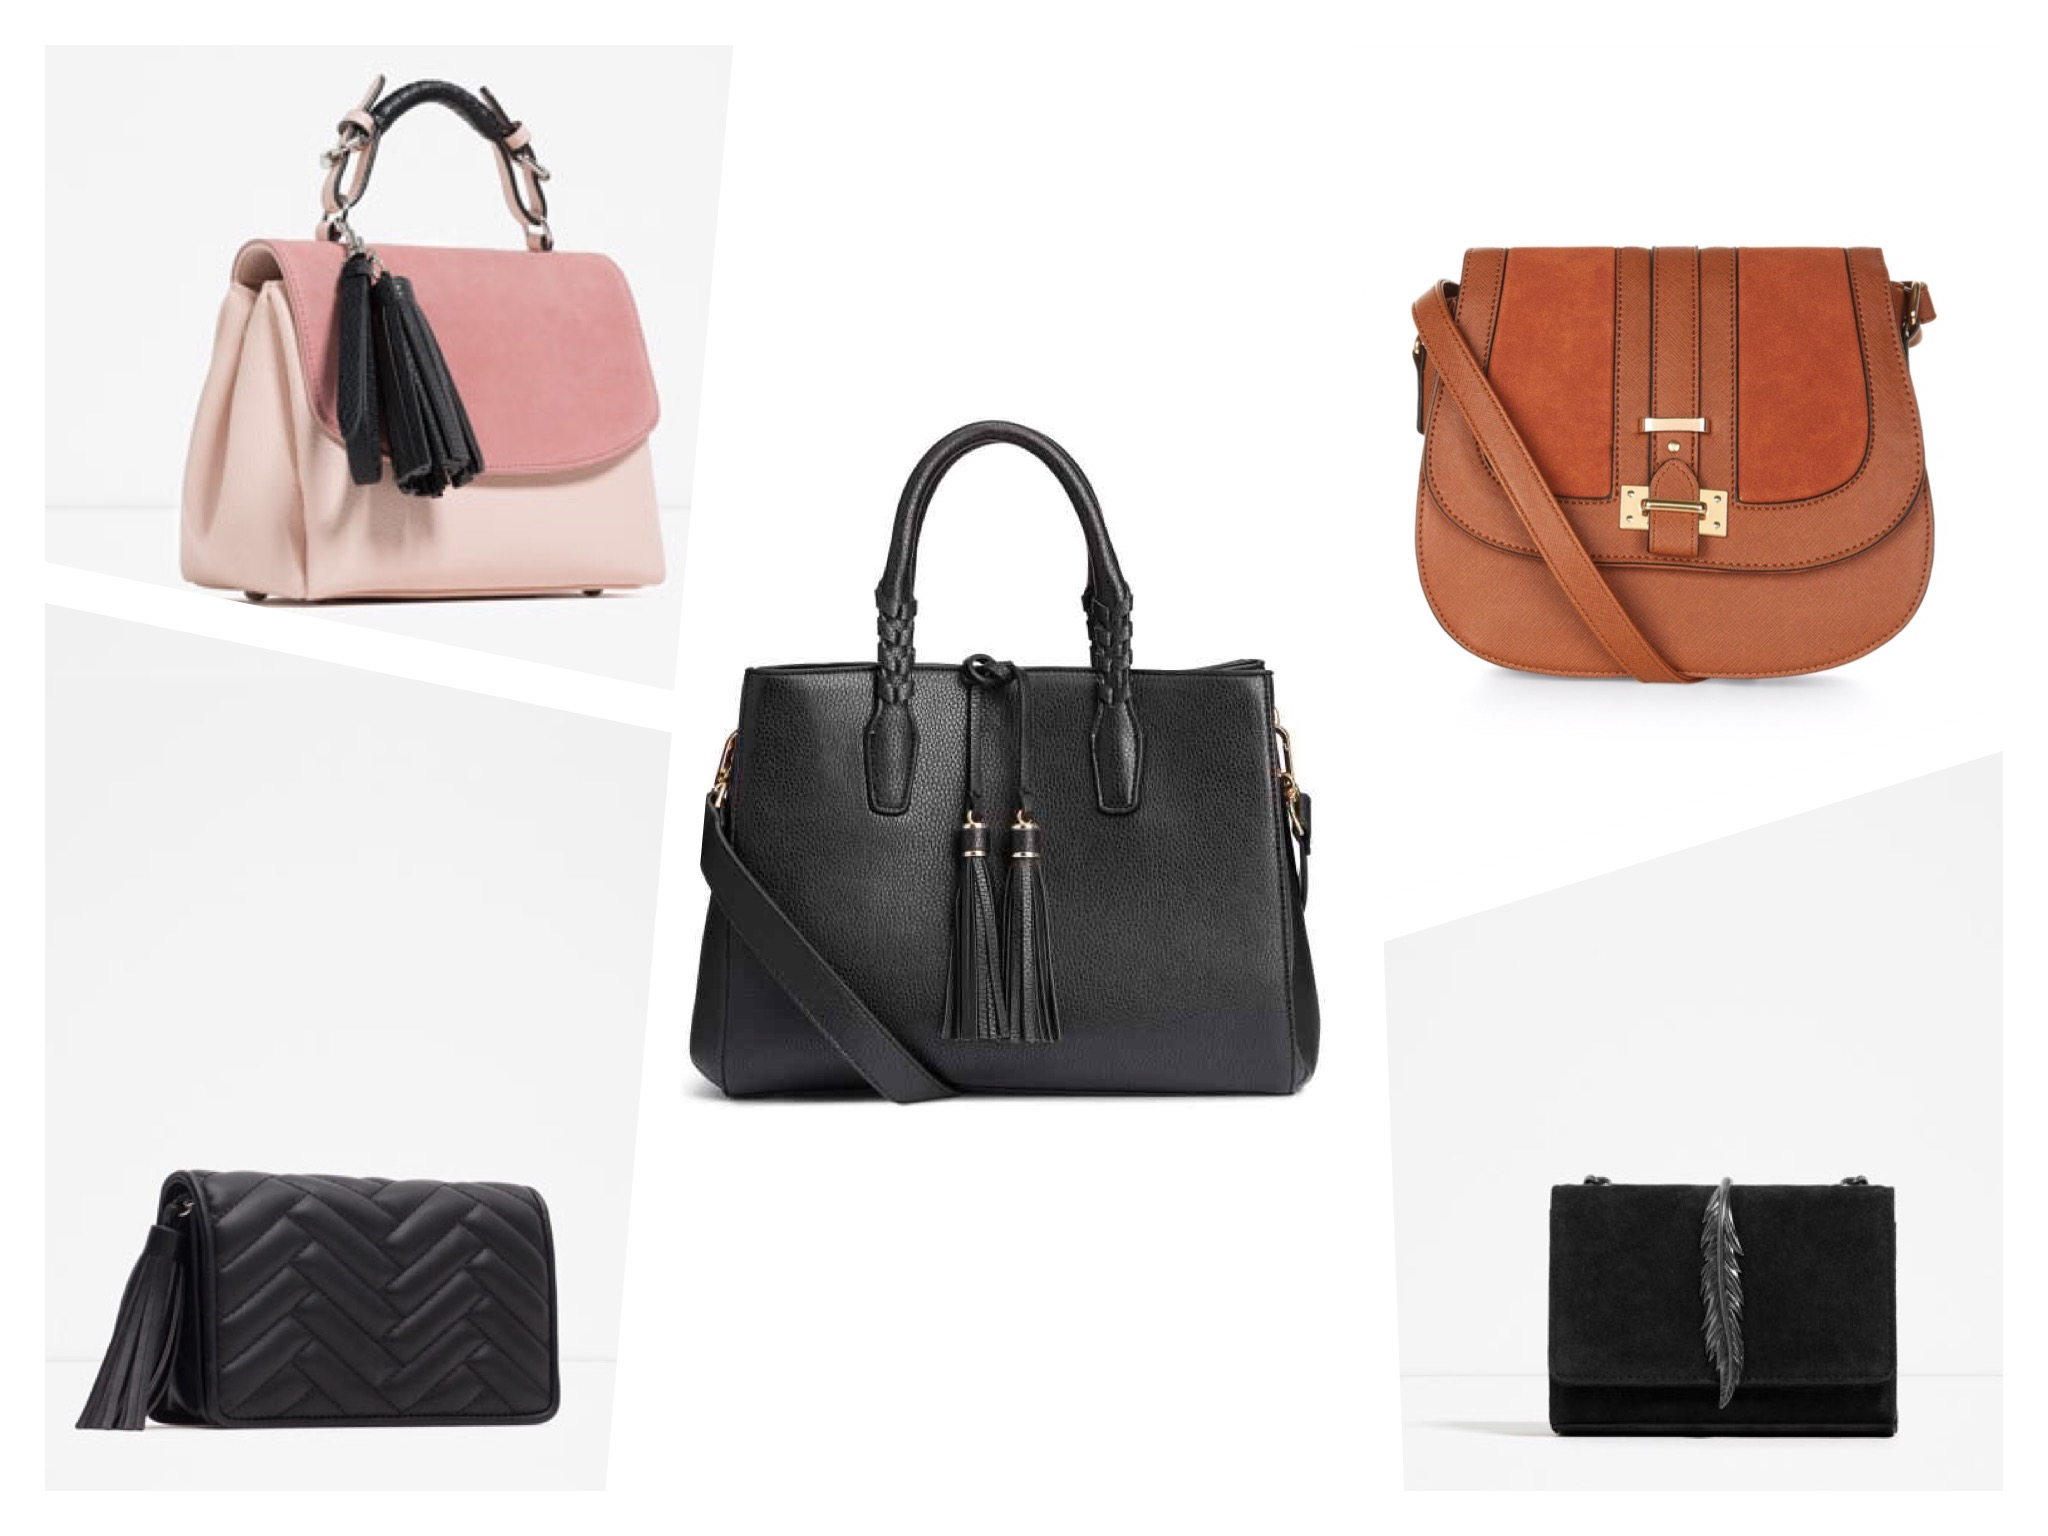 Zara & New Look Mini-bags